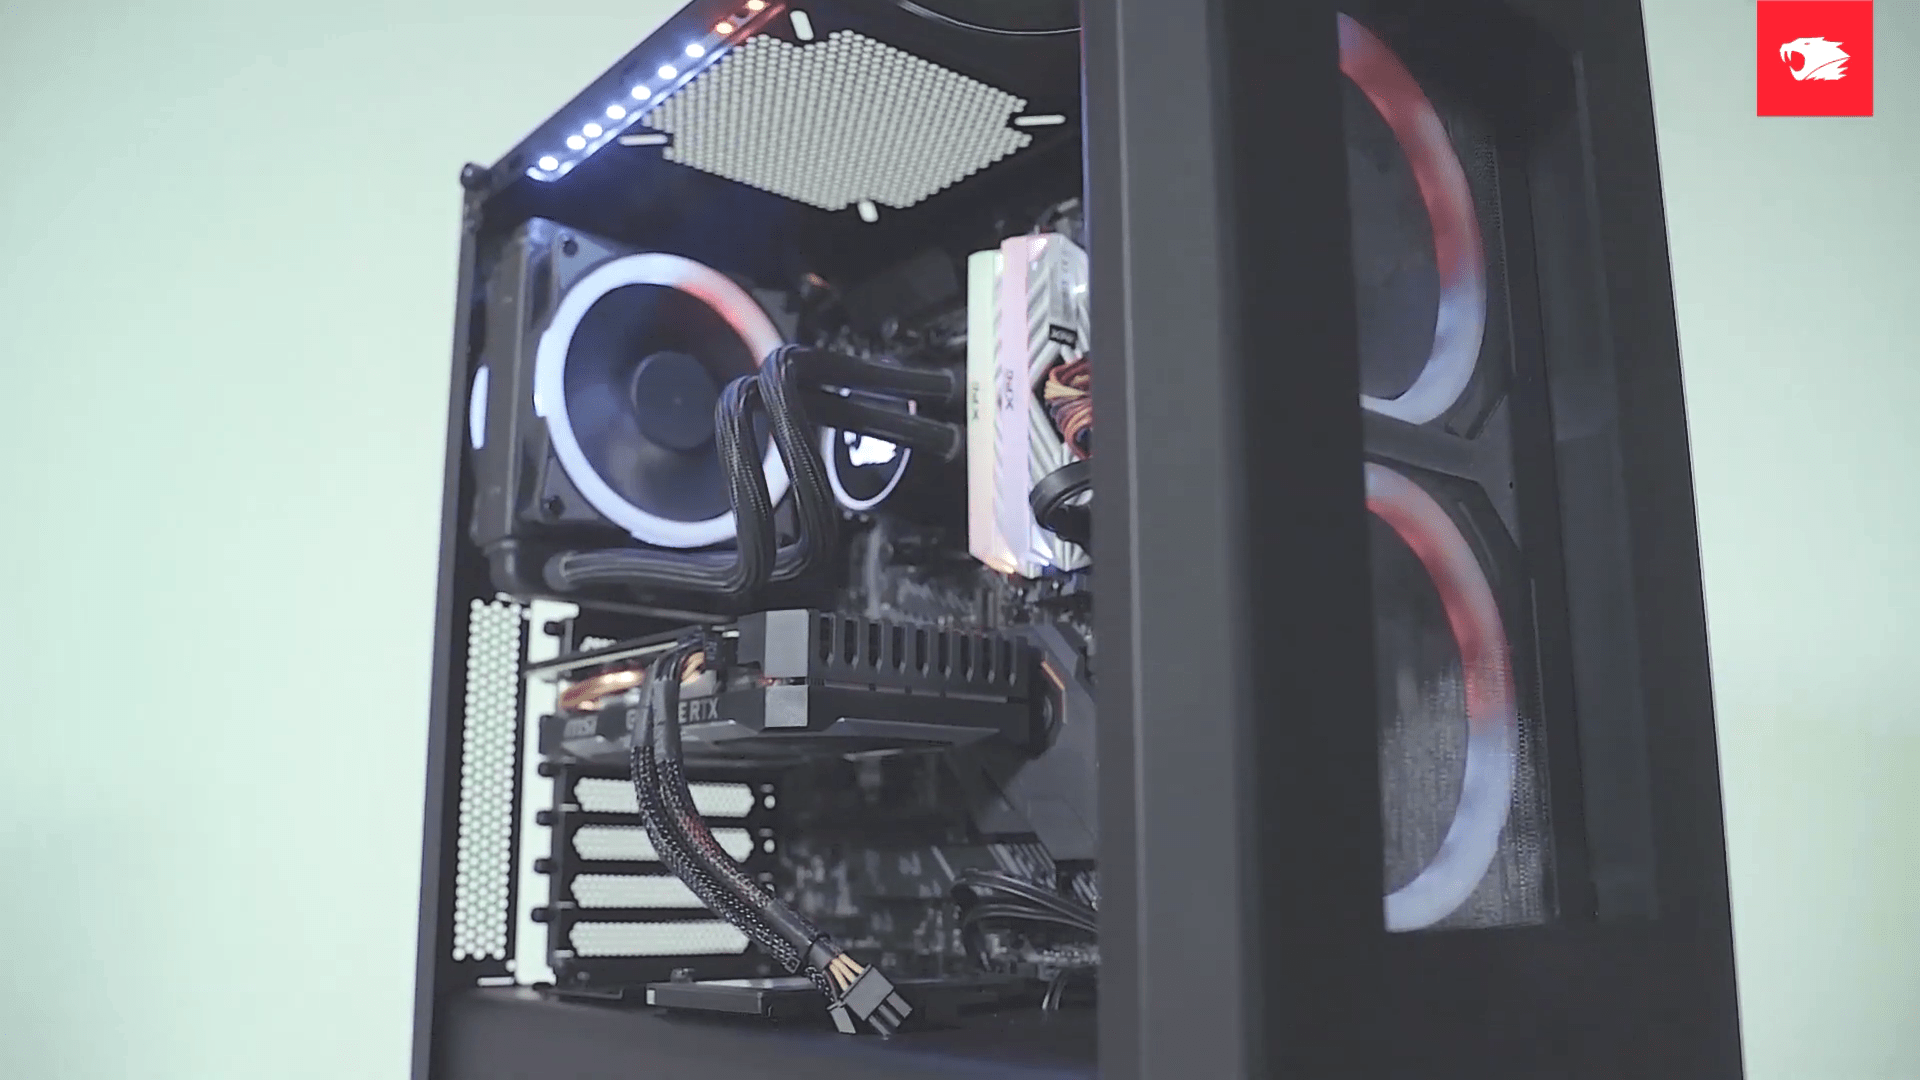 The iBUYPOWER Gaming RDY L20IRG201 Boasts Ryzen 9 3900X And GeForce RTX 2070 For Gaming Dominance